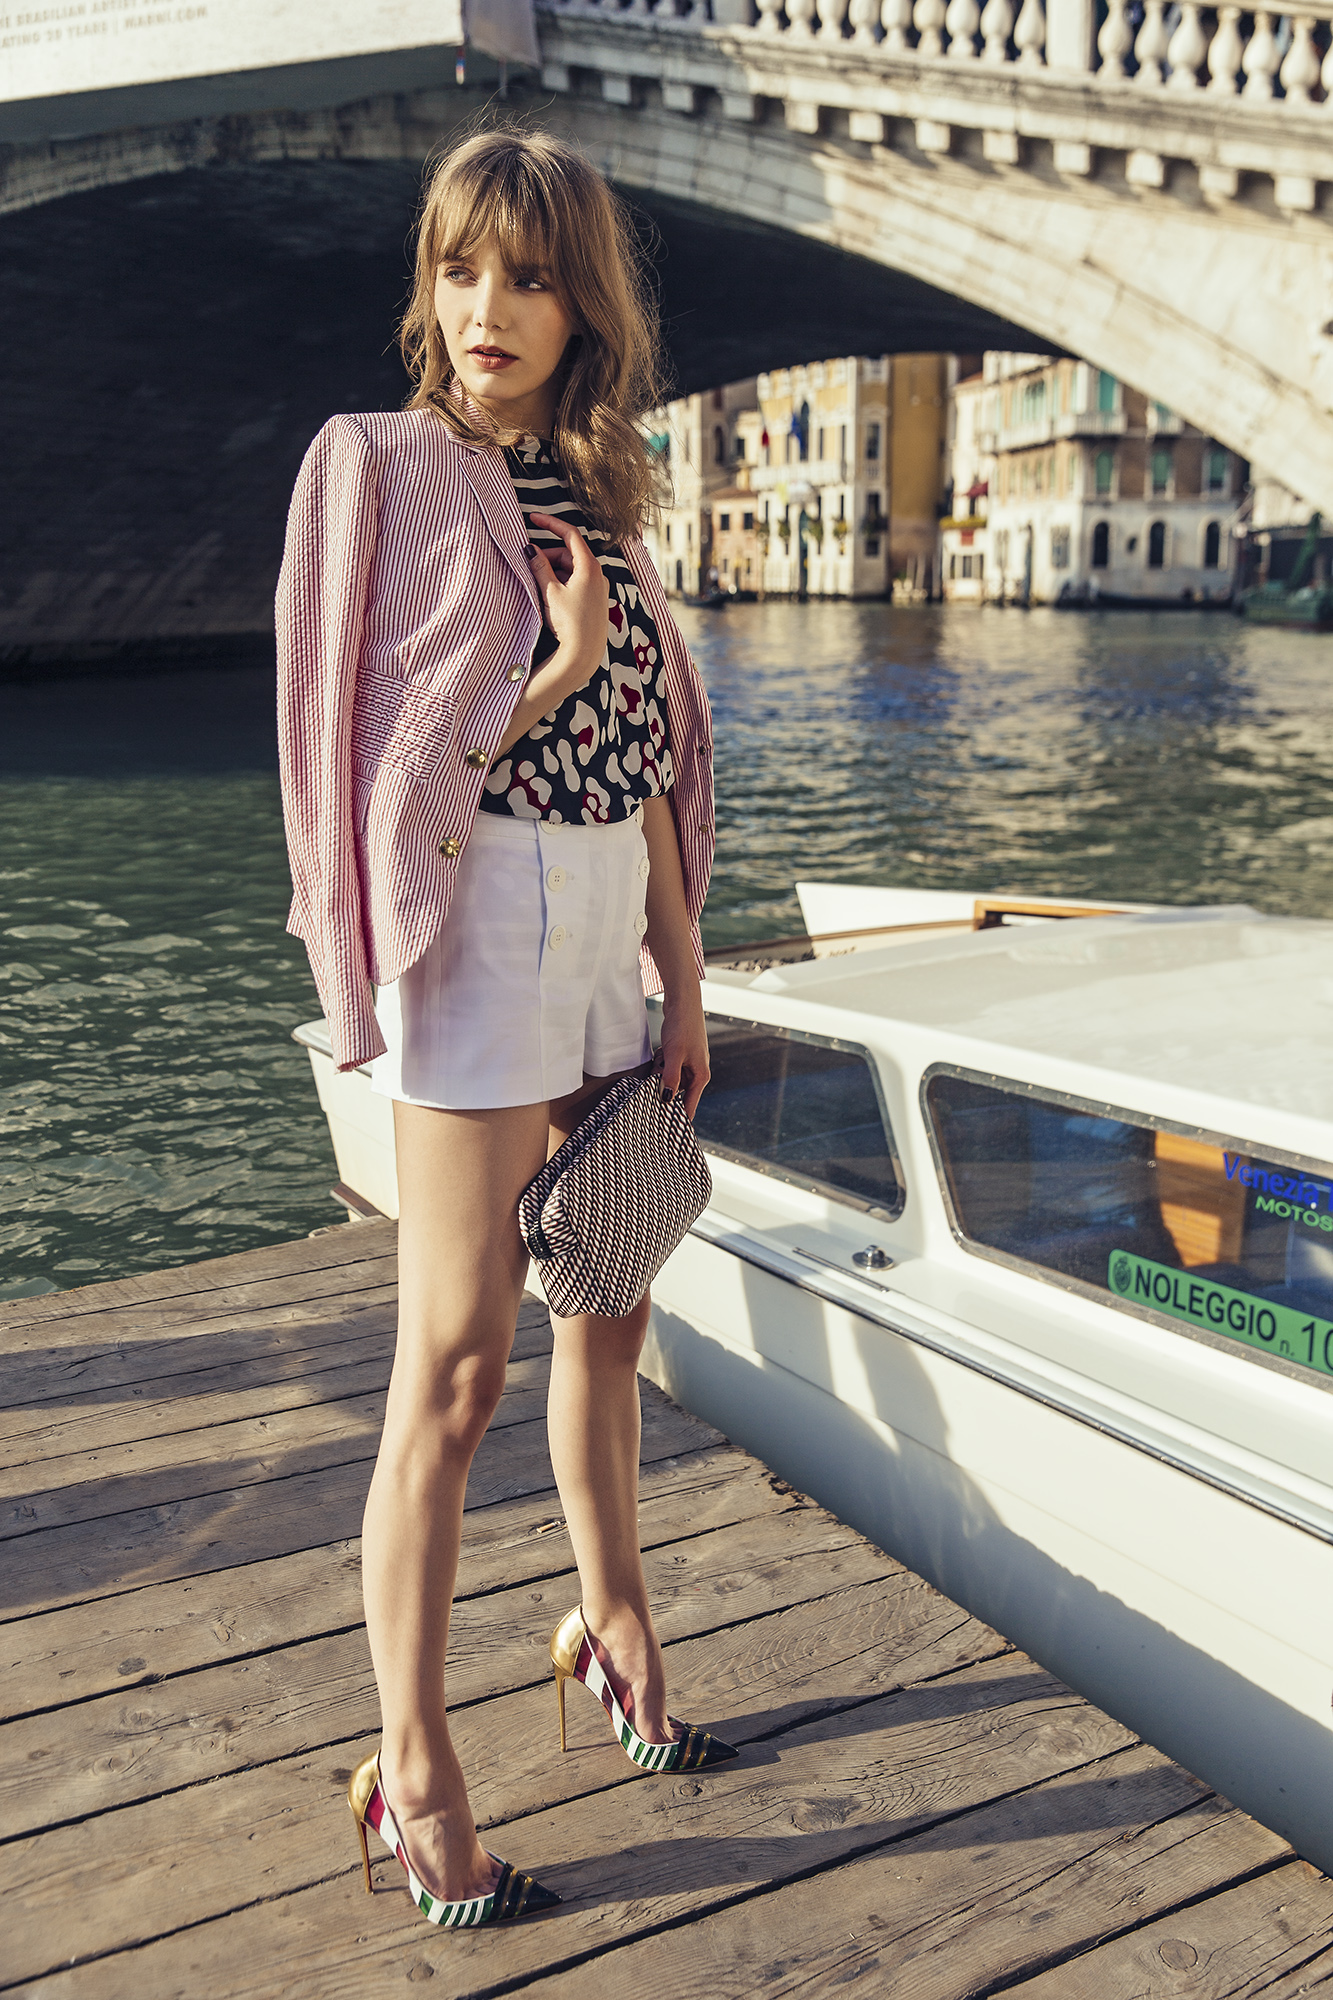 Summer Delight In Venice - Marie Claire Romania